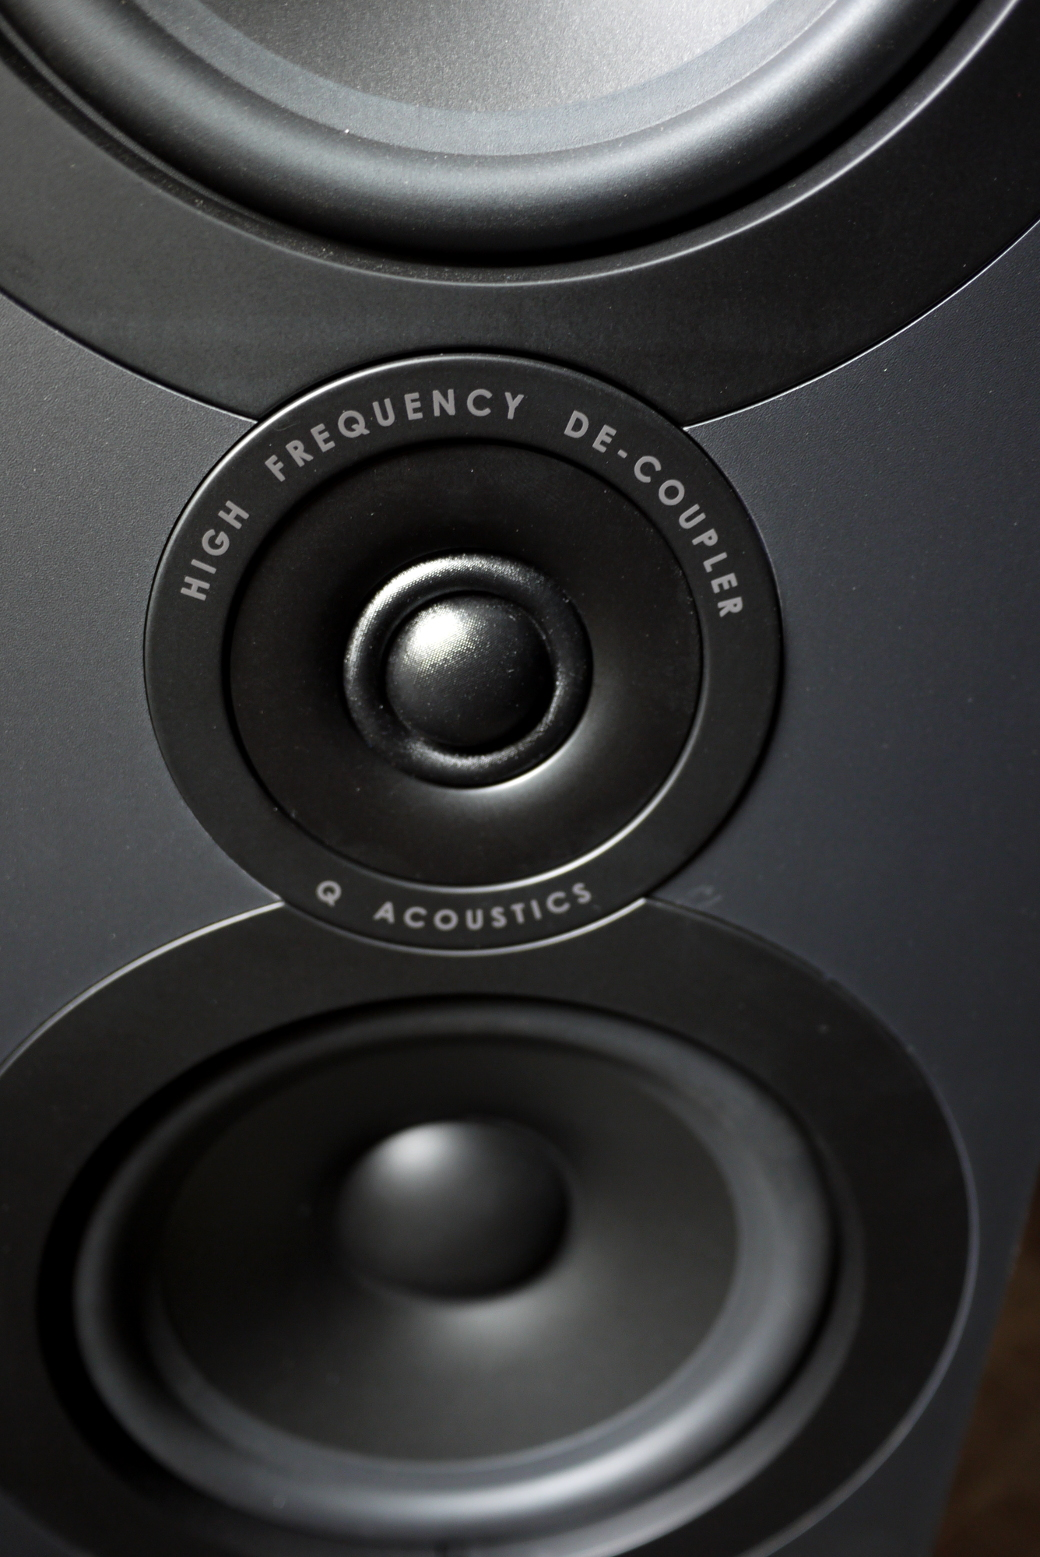 Q Acoustics 3050 Loudspeakers - The Antidote to Overthinking